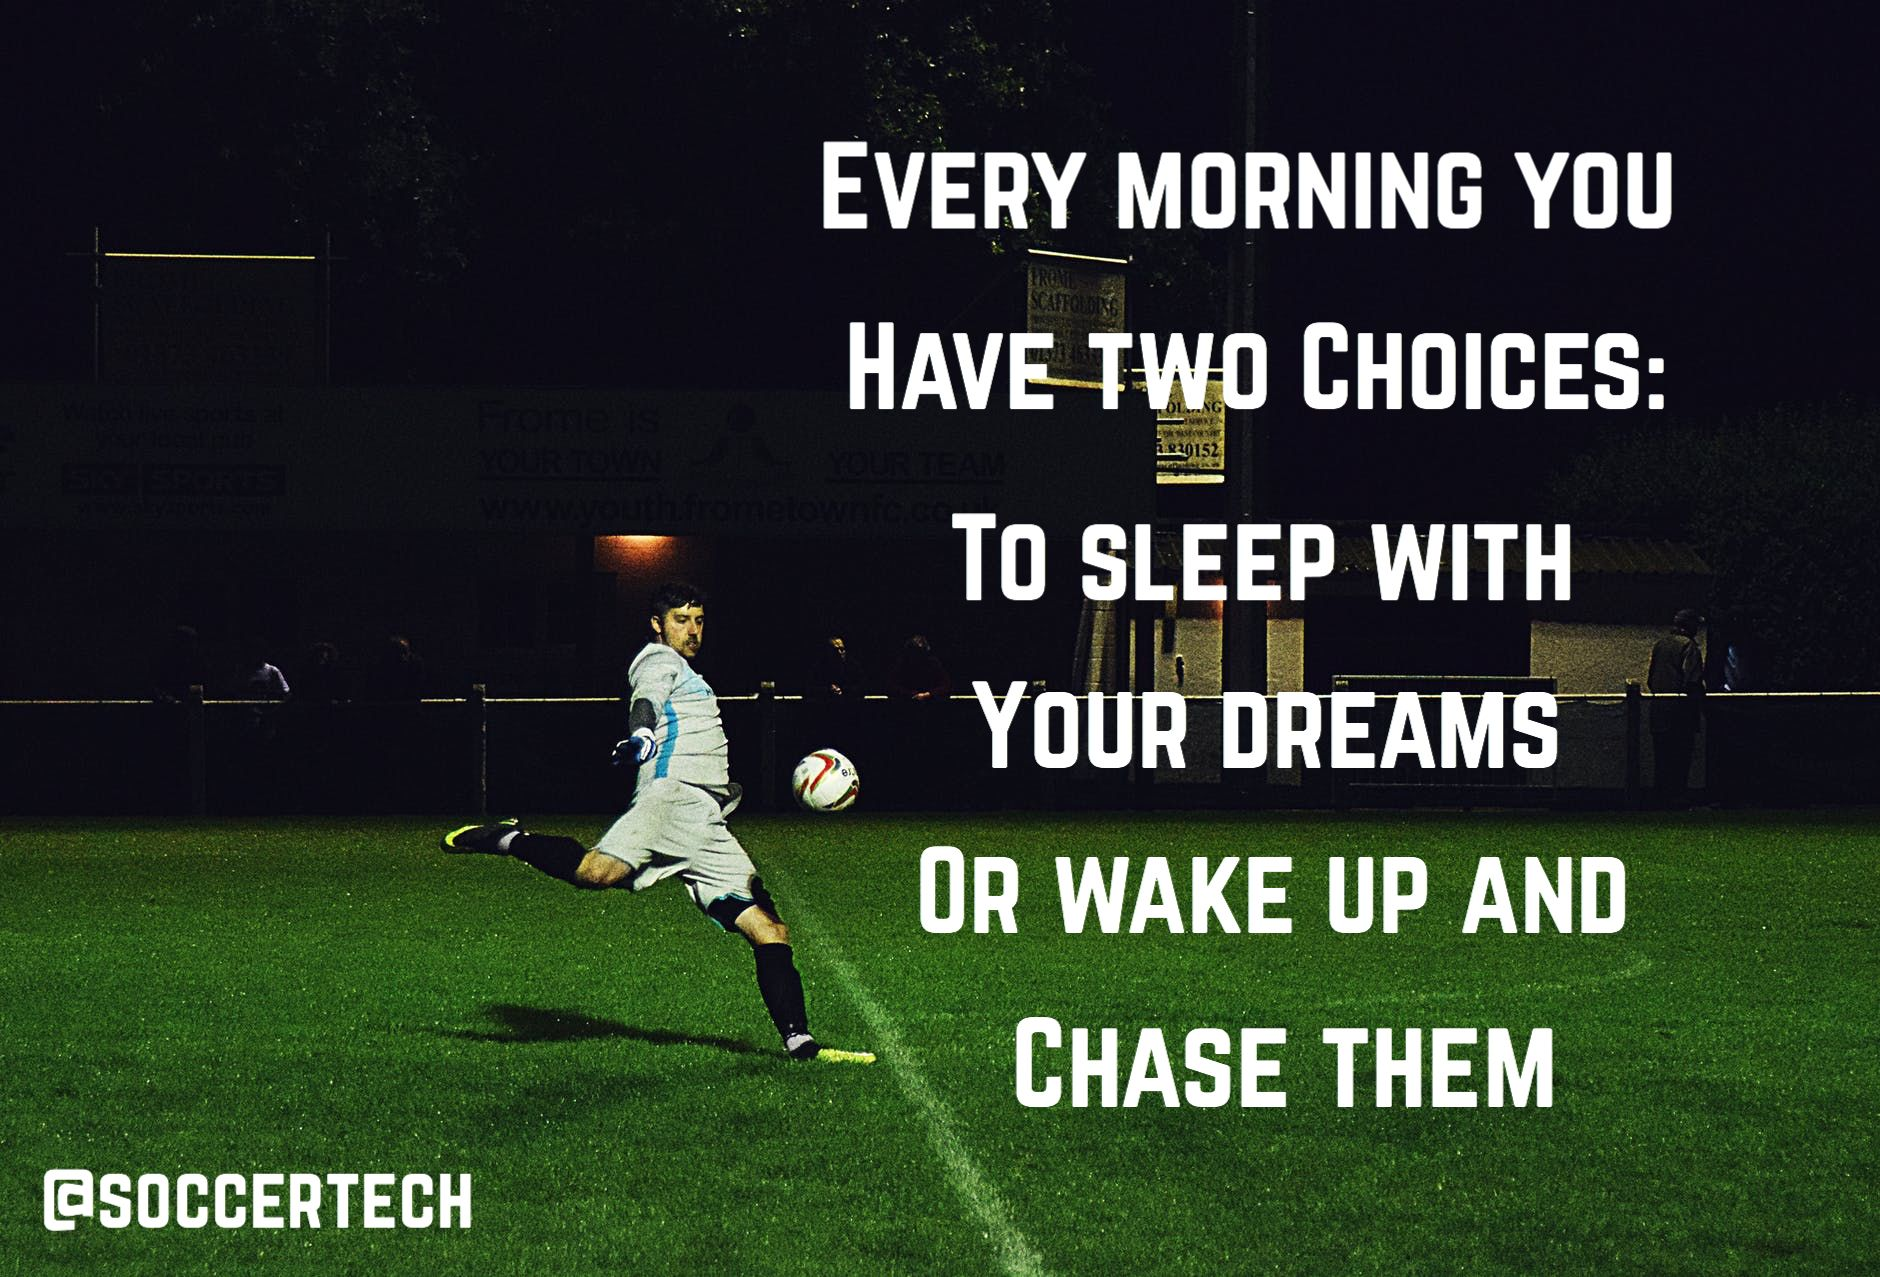 Chase Your Dreams Soccer Inspiration Motivation Futbol Quotes Soccerquote Motivationalquotes Inspirationalquo Soccer Quotes Soccer Inspiration Soccer